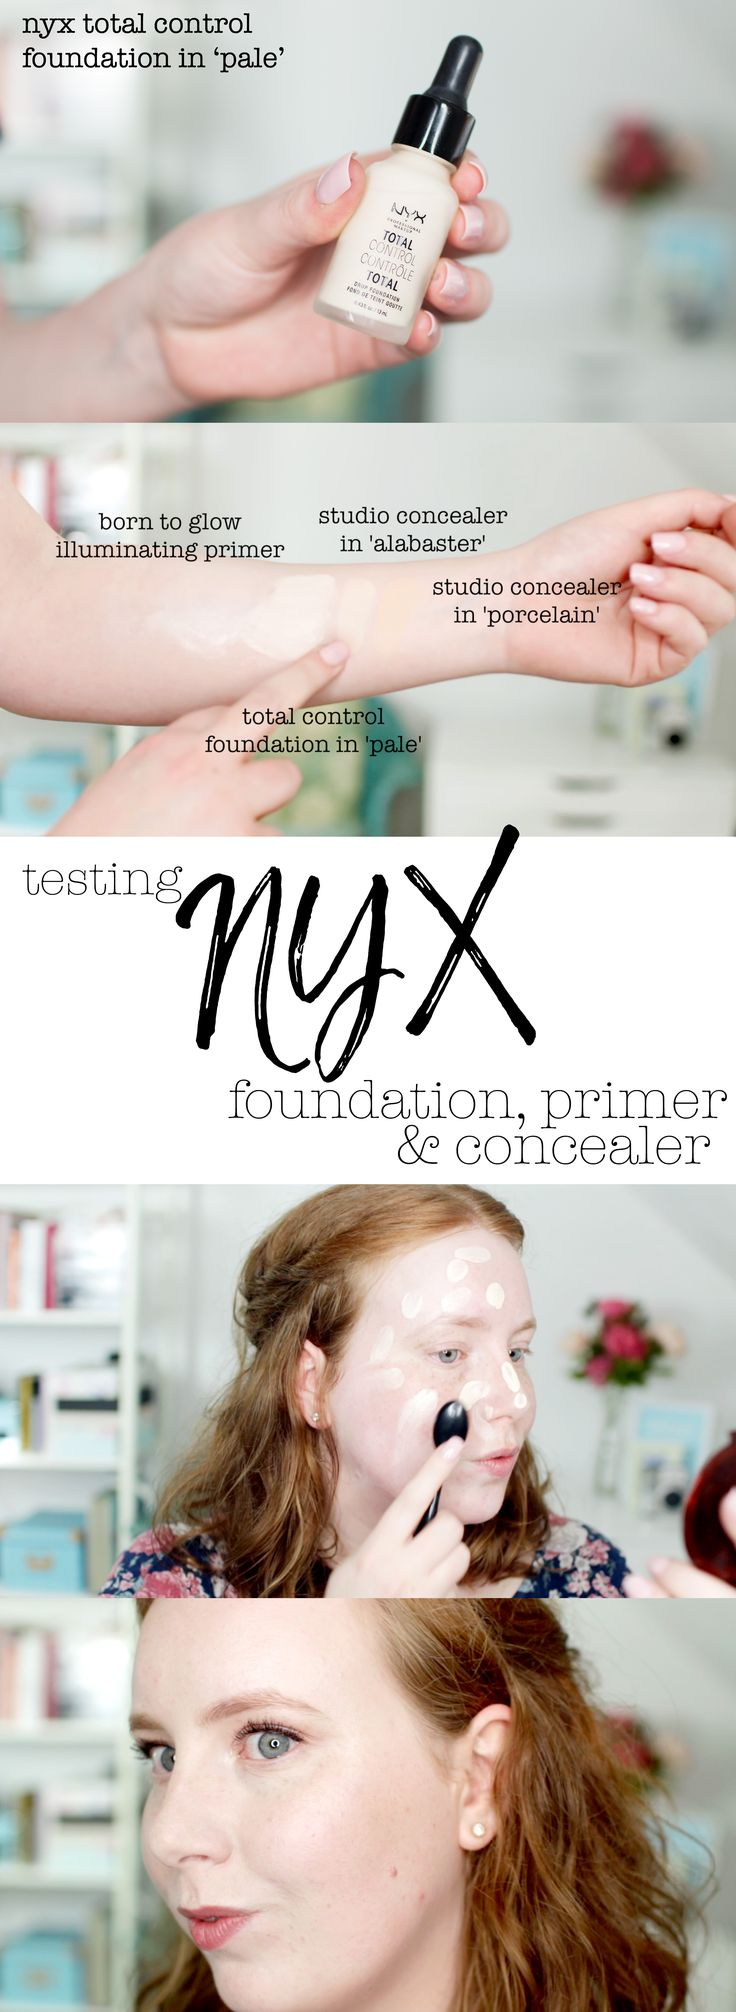 I recently tried out some base products from NYX, including Born to Glow Illuminating Primer, the Total Control Foundation in 'Pale' (their lightest shade, and probably the lightest foundation I've ever seen), and their Studio HD Concealers in Alabaster and Porcelain. Definitely #redheadapproved! Give the video a watch to see what I think.  #swatches #nyx #paleskinmakeup #foundation #makeup #palefoundations